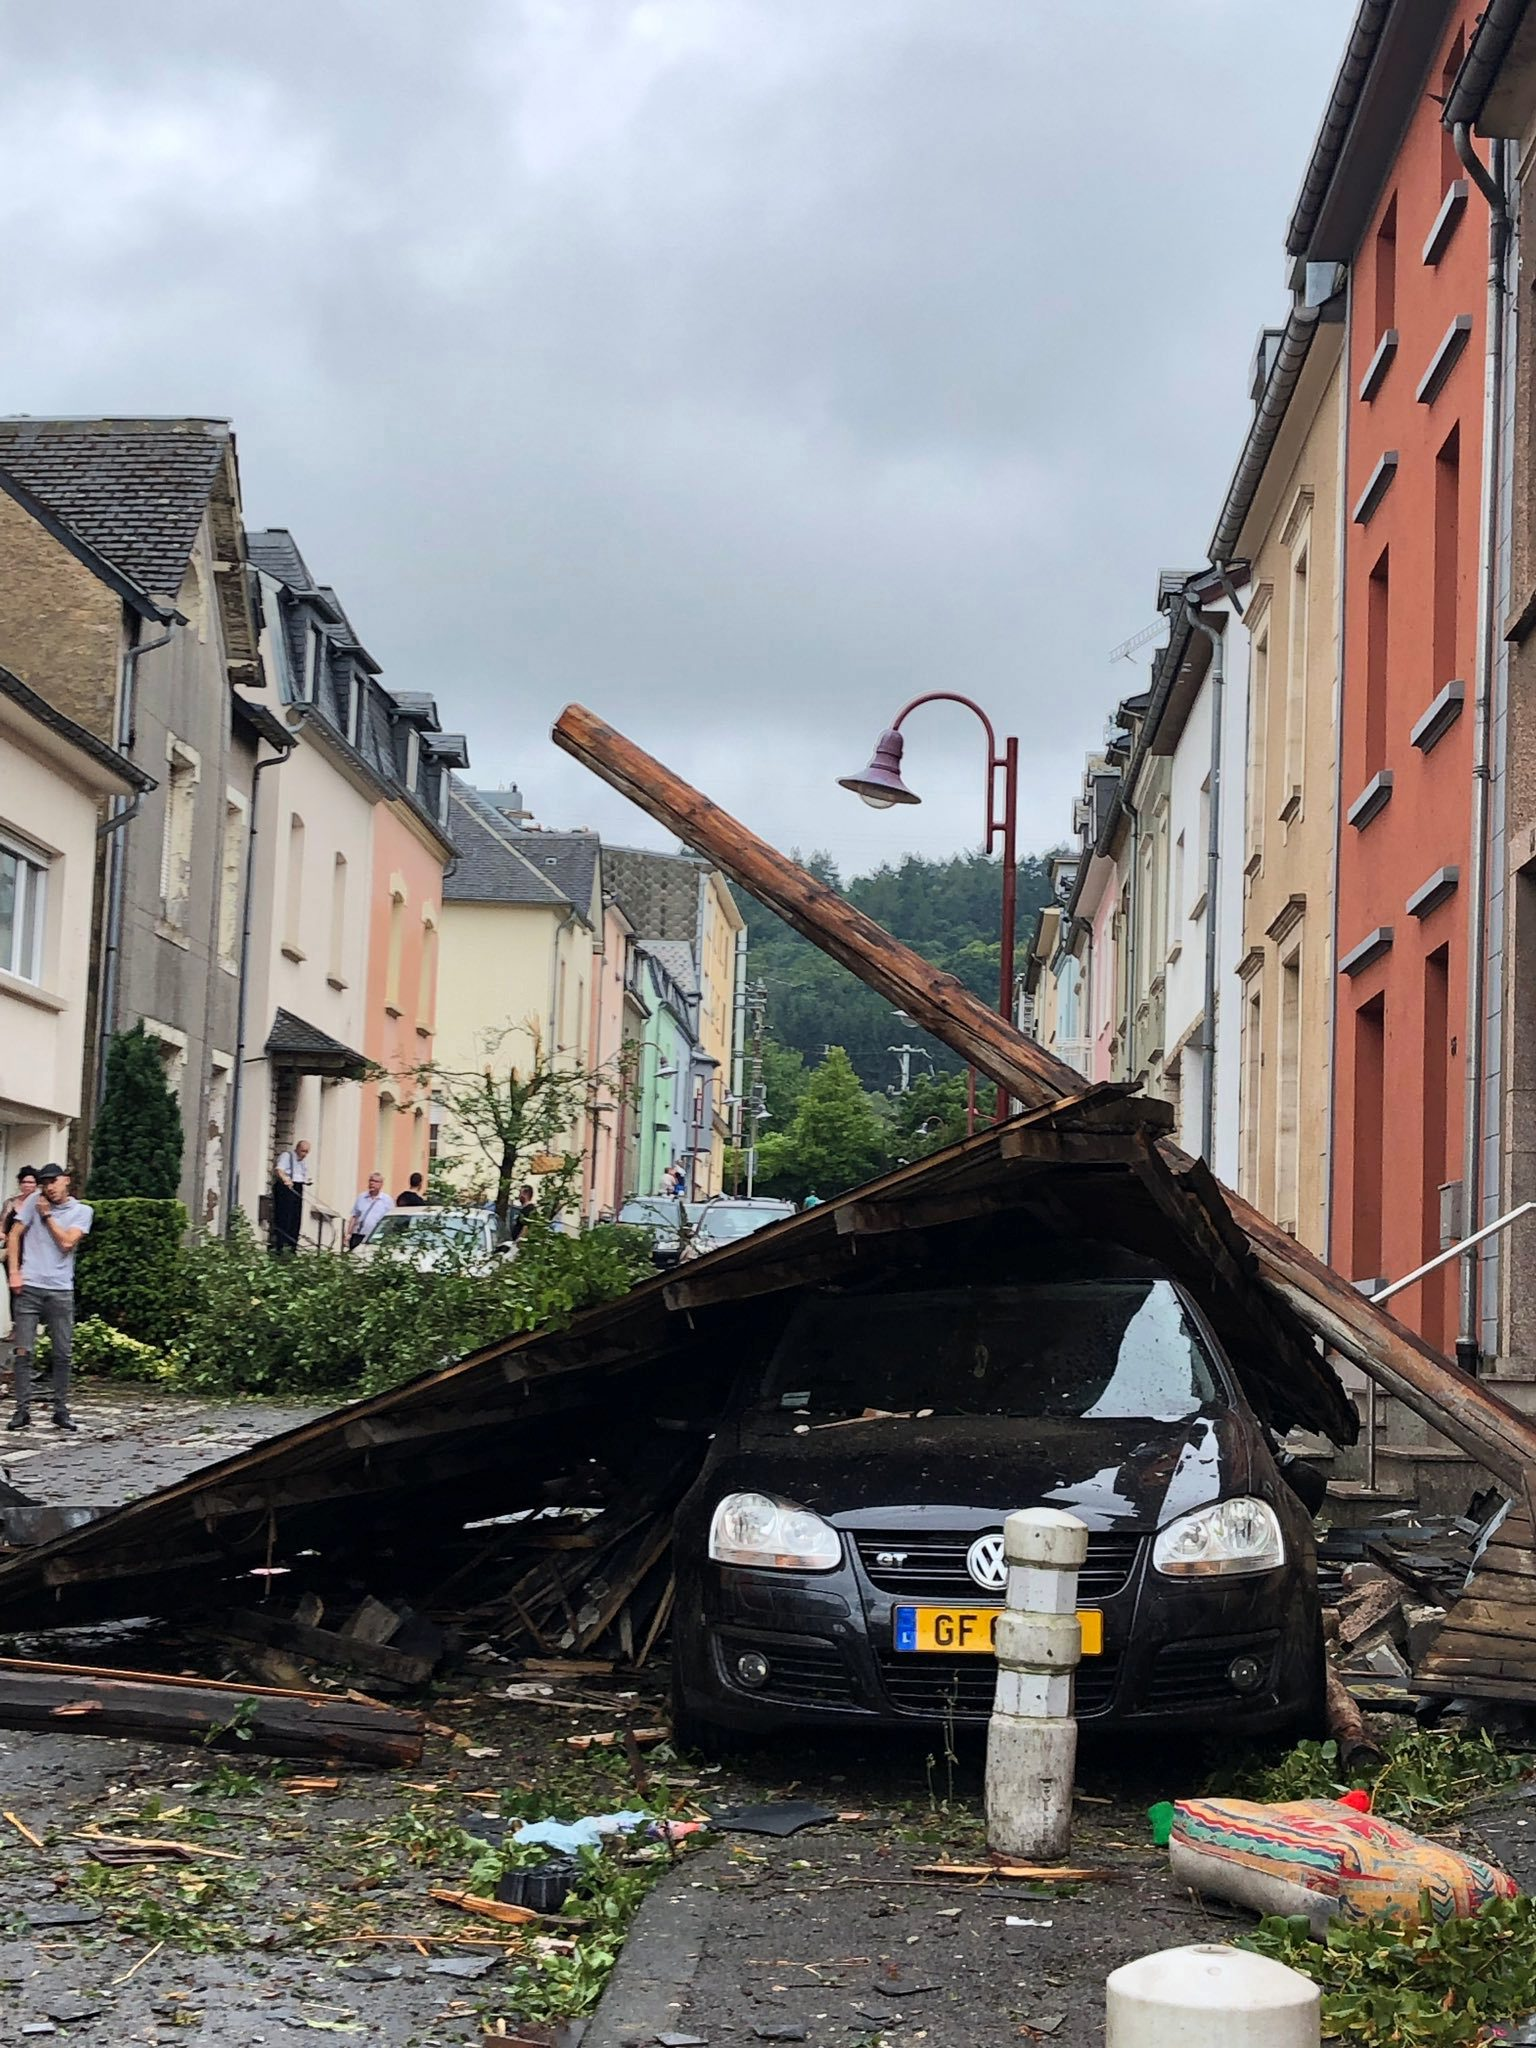 Damages left by a tornado are seen in Petange, Luxembourg, August 9, 2019, in this image obtained from social media. Pierrick Bourgeois via REUTERS. ATTENTION EDITORS - THIS IMAGE HAS BEEN SUPPLIED BY A THIRD PARTY. MANDATORY CREDIT. NO RESALES. NO ARCHIVES.